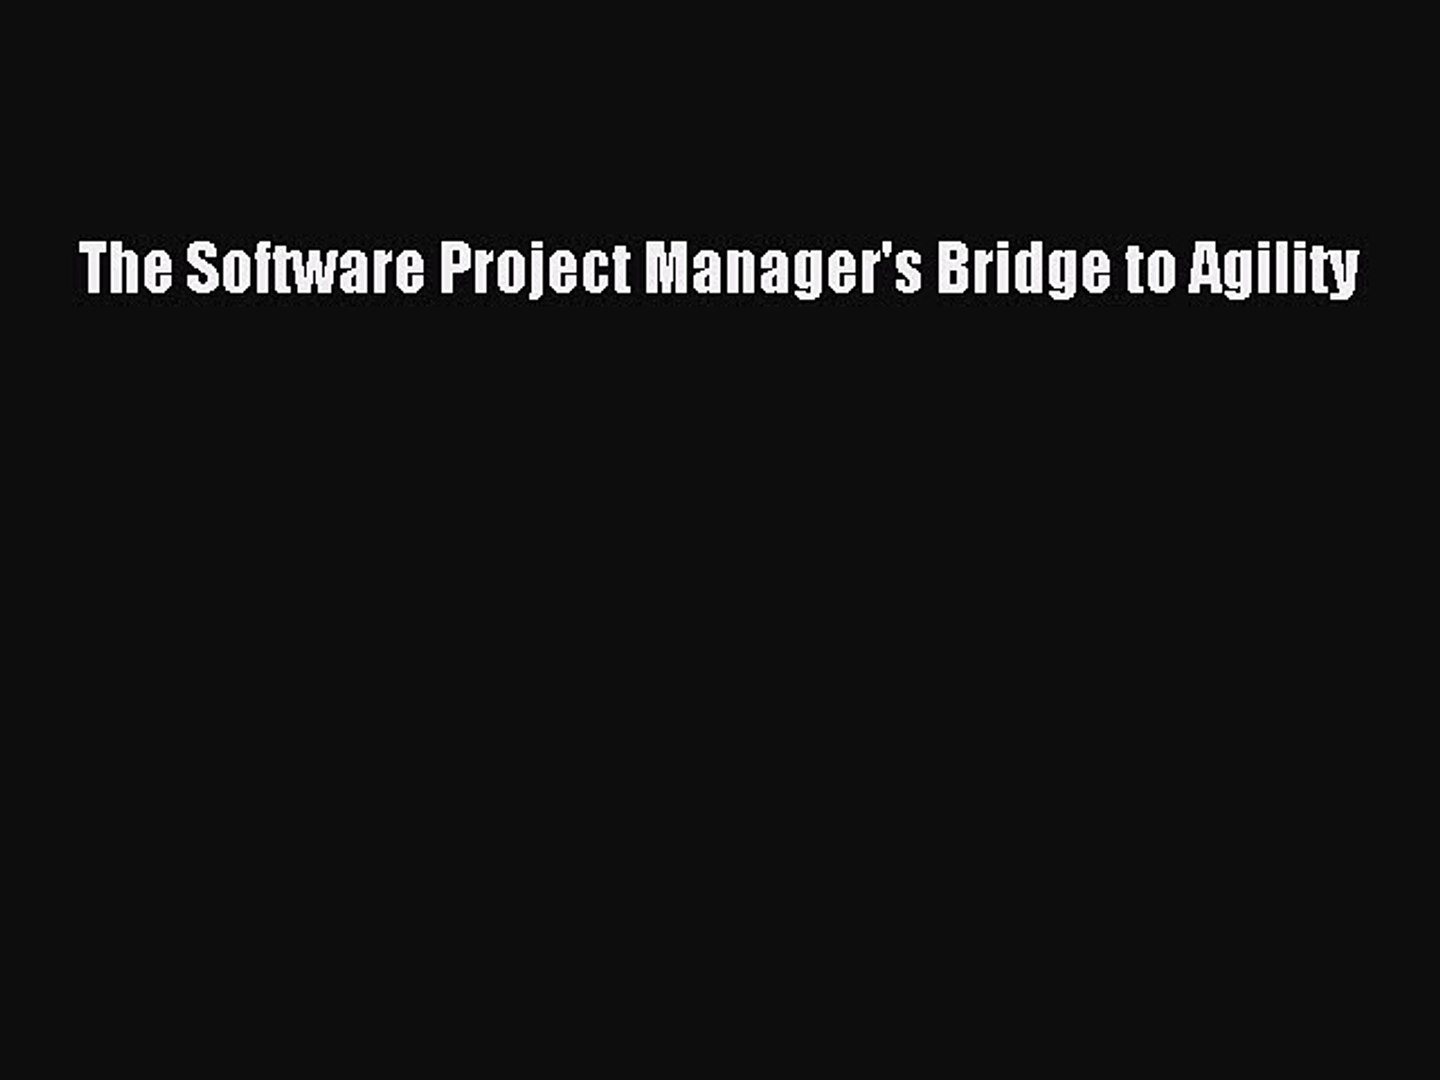 The Software Project Managers Bridge to Agility